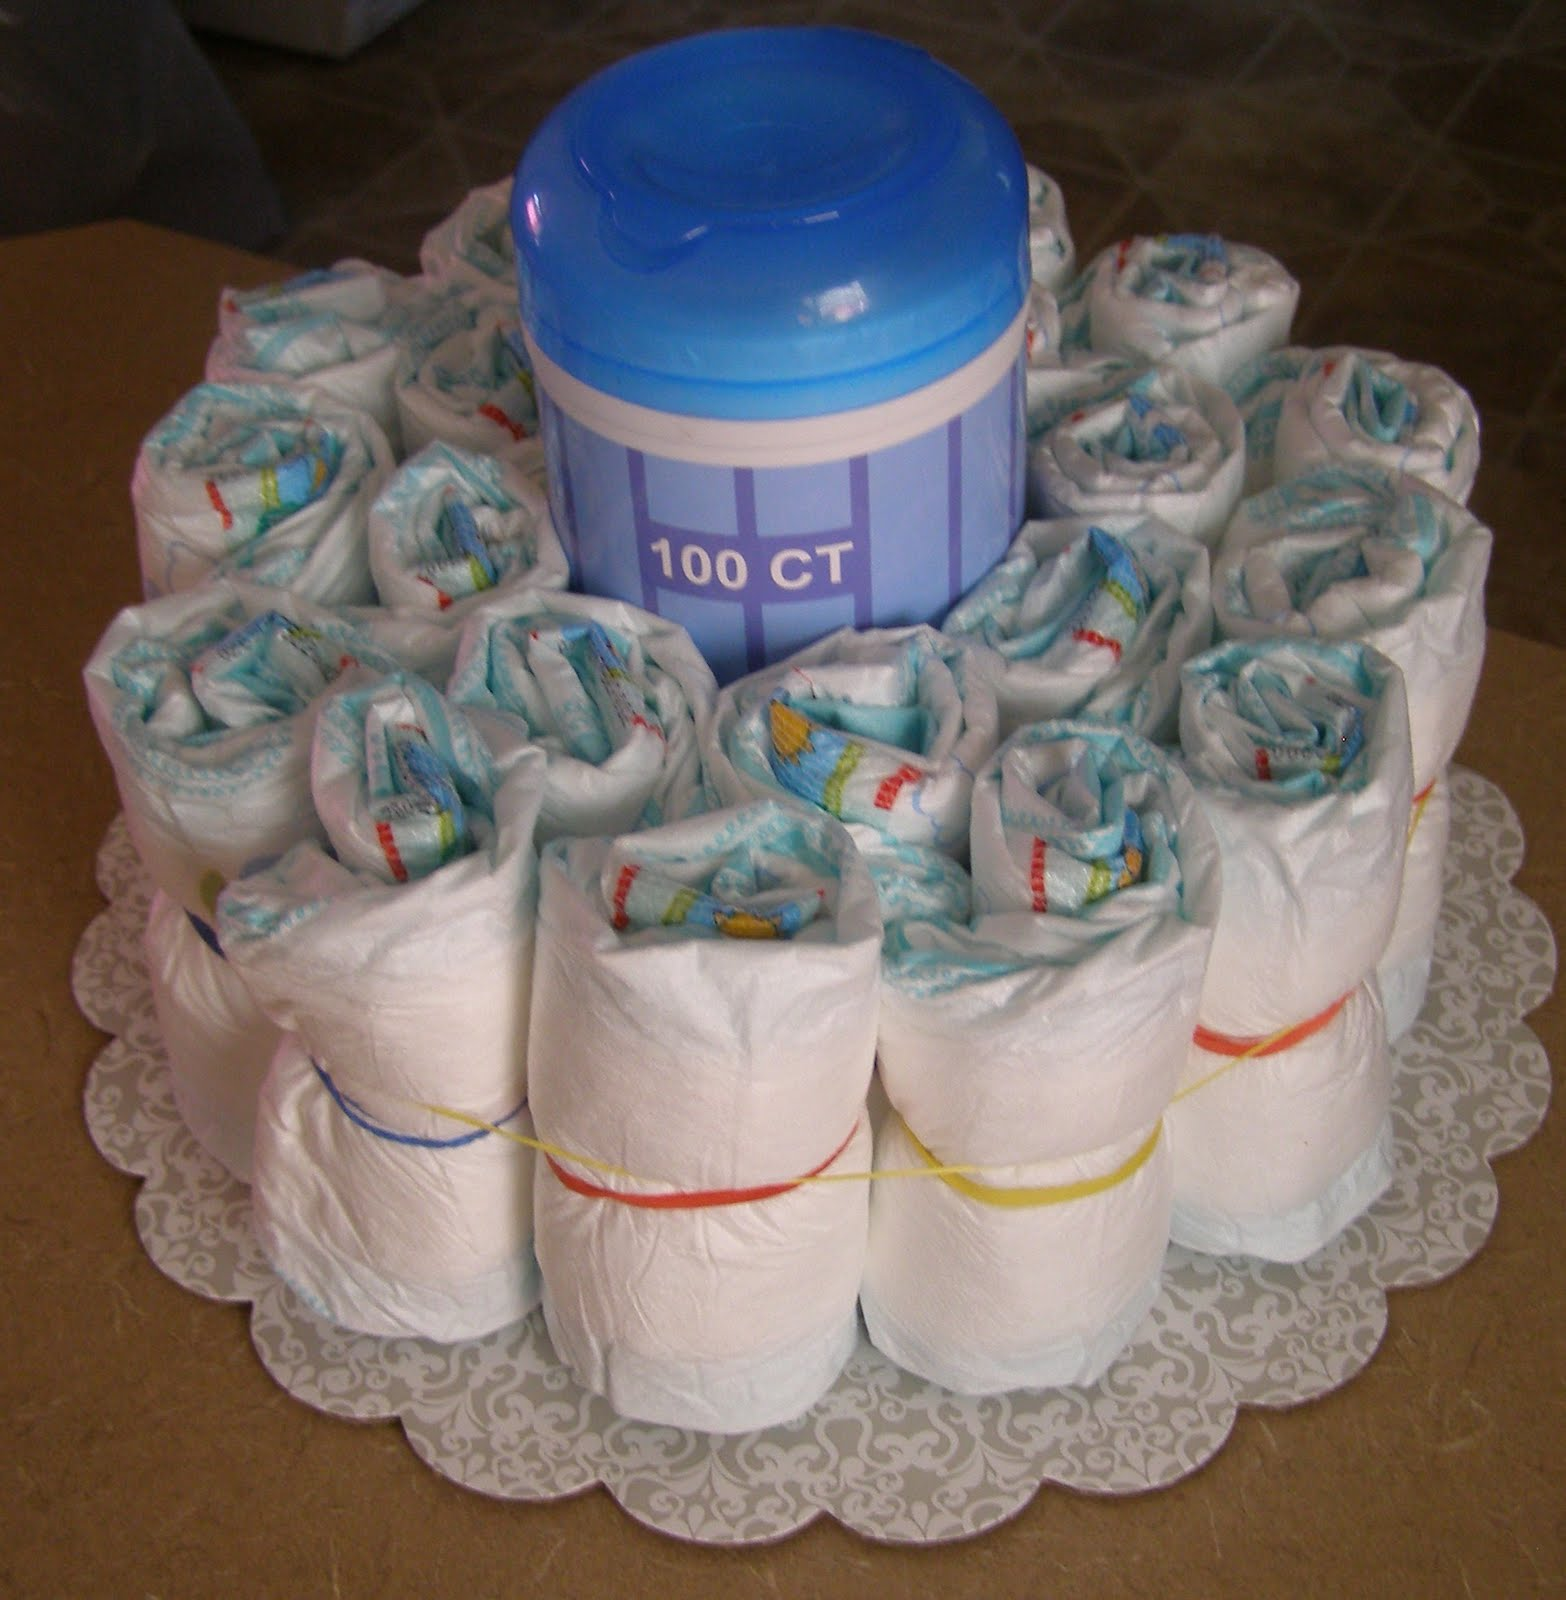 Second, place a large rubber band around the tall package of wipes and ...